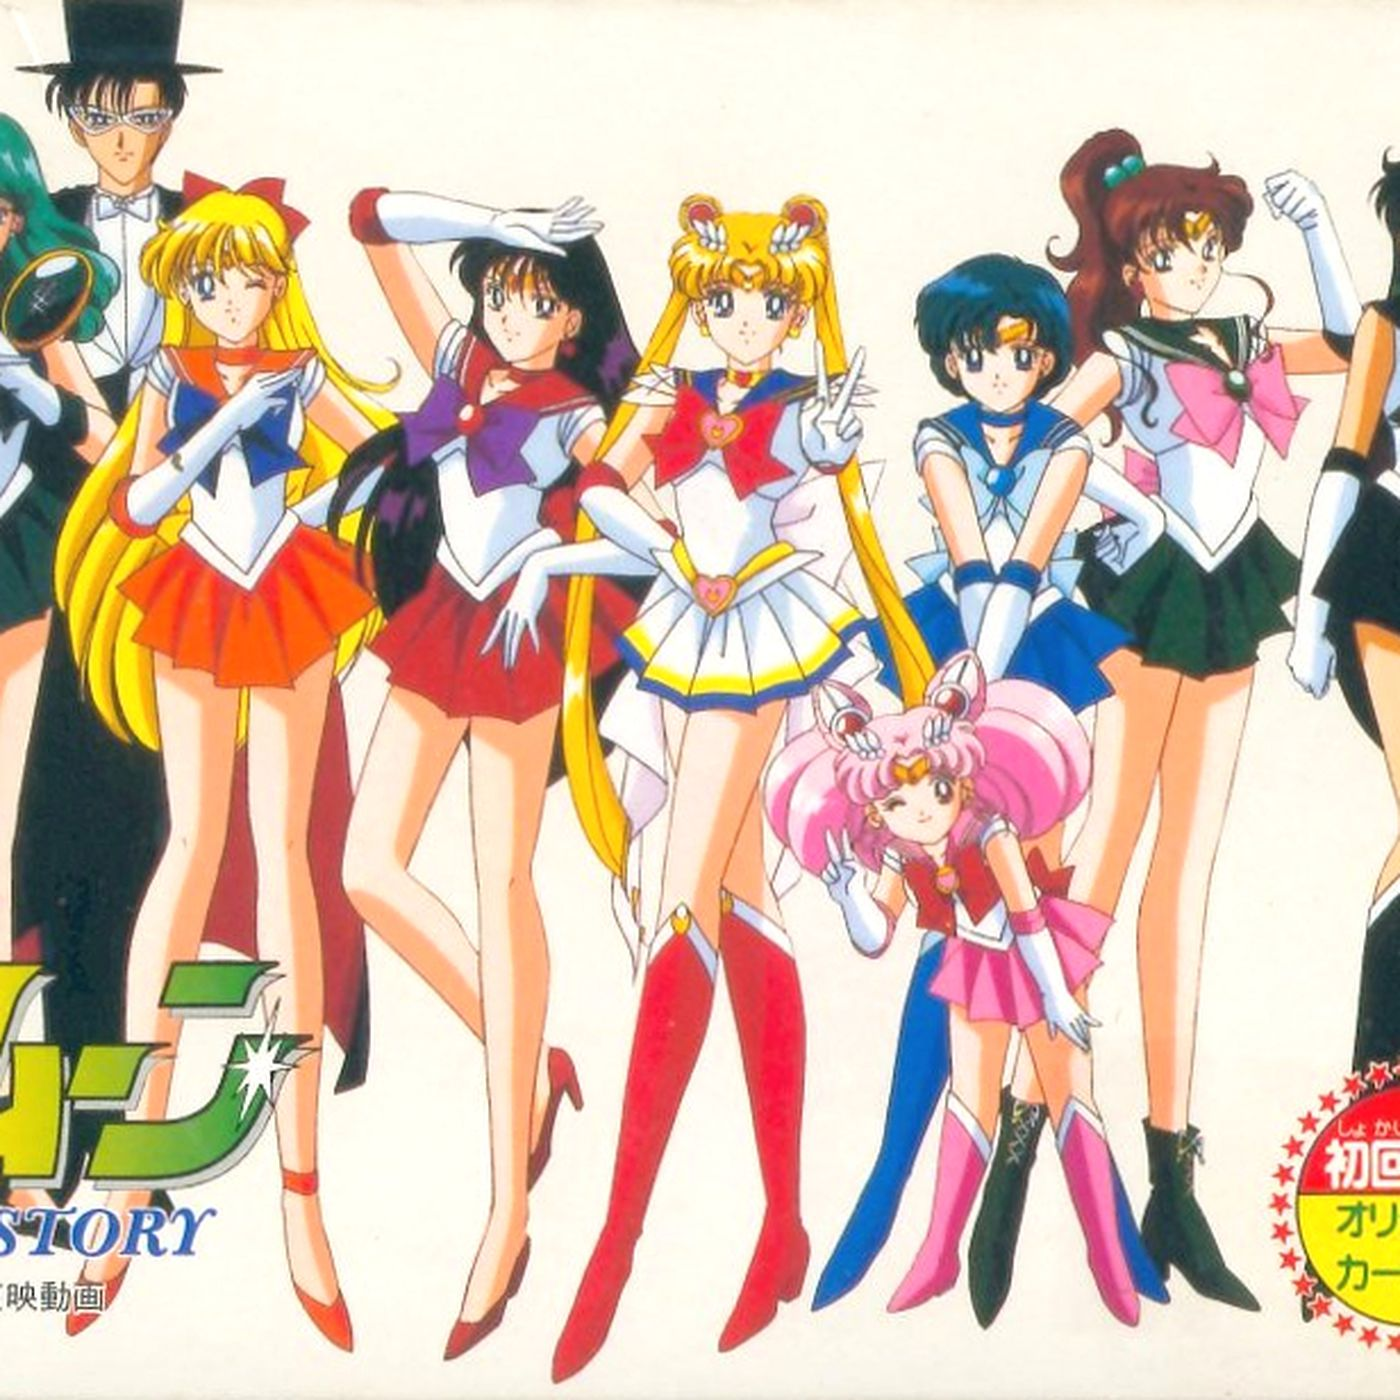 Sailor Moon RPG localized by fans 23 years later - Polygon